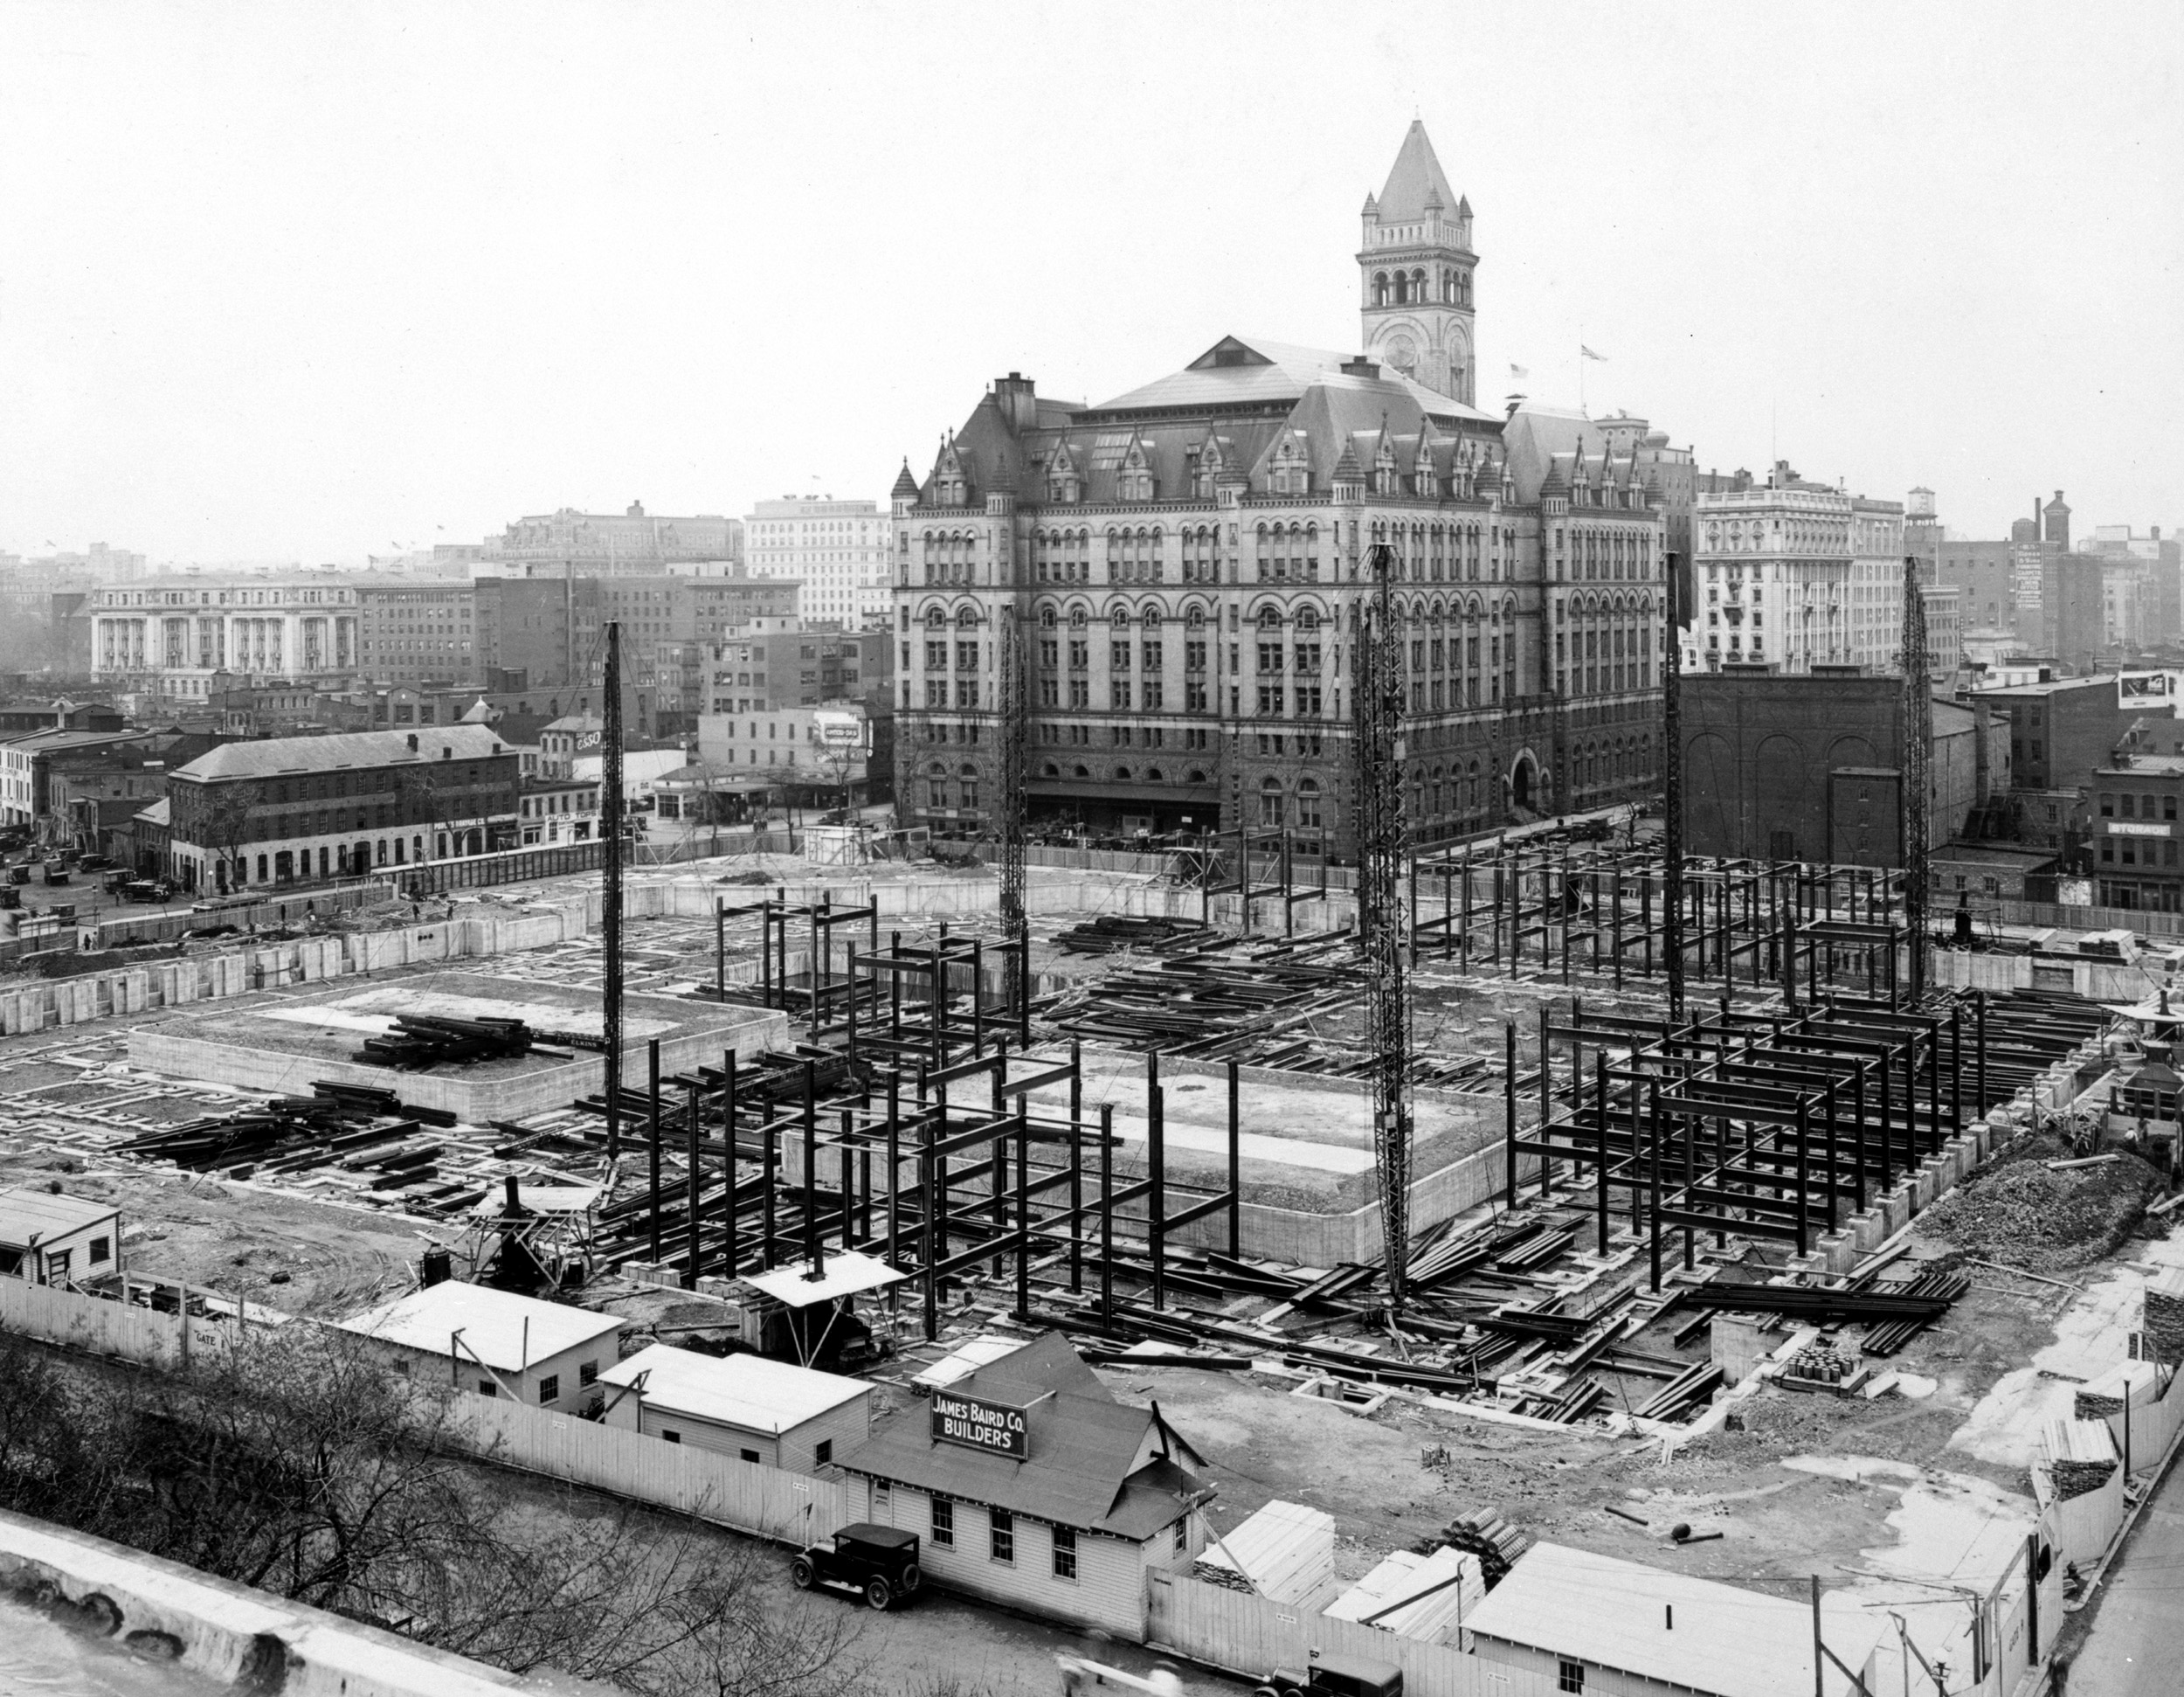 Framing of the IRS building begins. The Old Post Office is visible in the background.